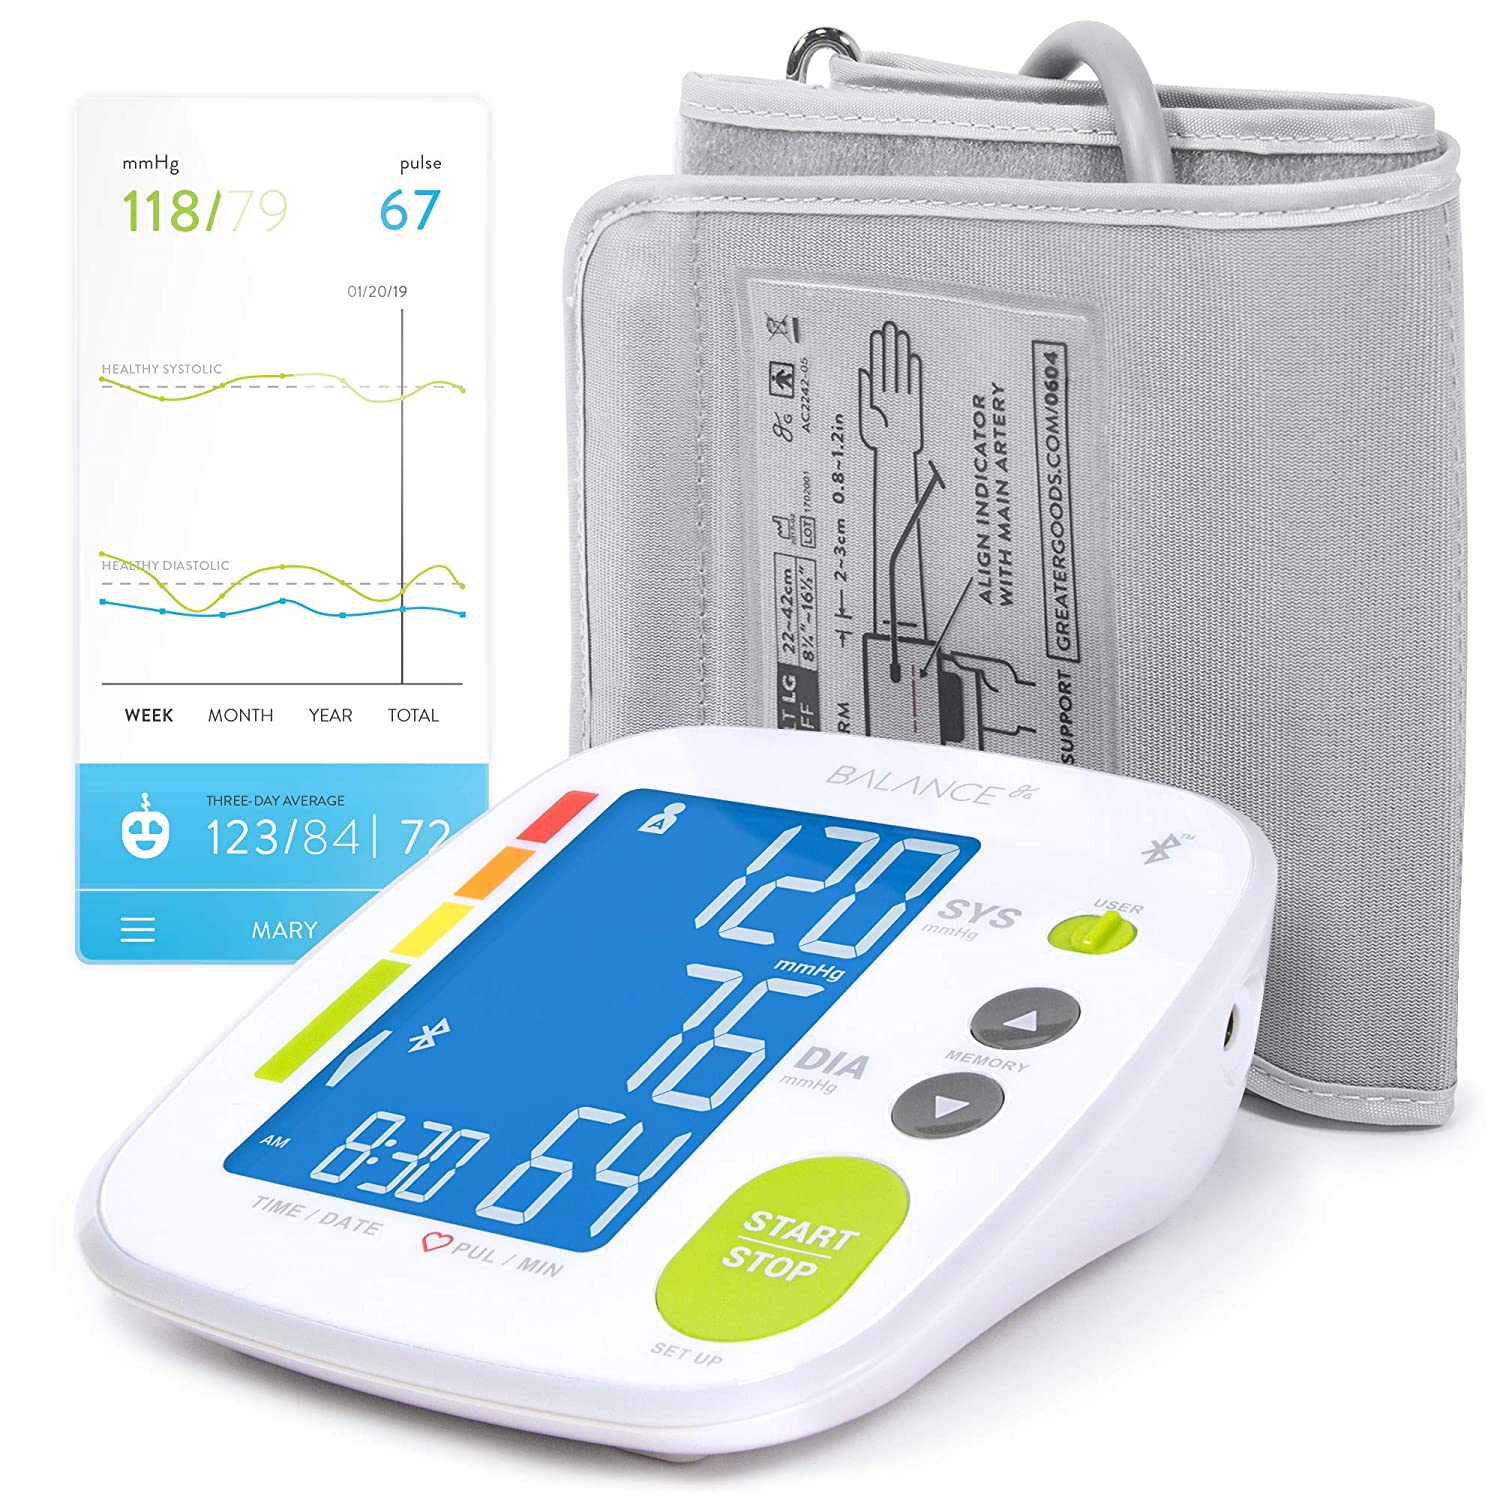 Smart Blood Pressure Monitor Cuff by GreaterGoods, Free App Smart Connected BP Monitor, Upper Arm Cuff, with Large Digital Display, Kit Complete with Soft Case Renewed